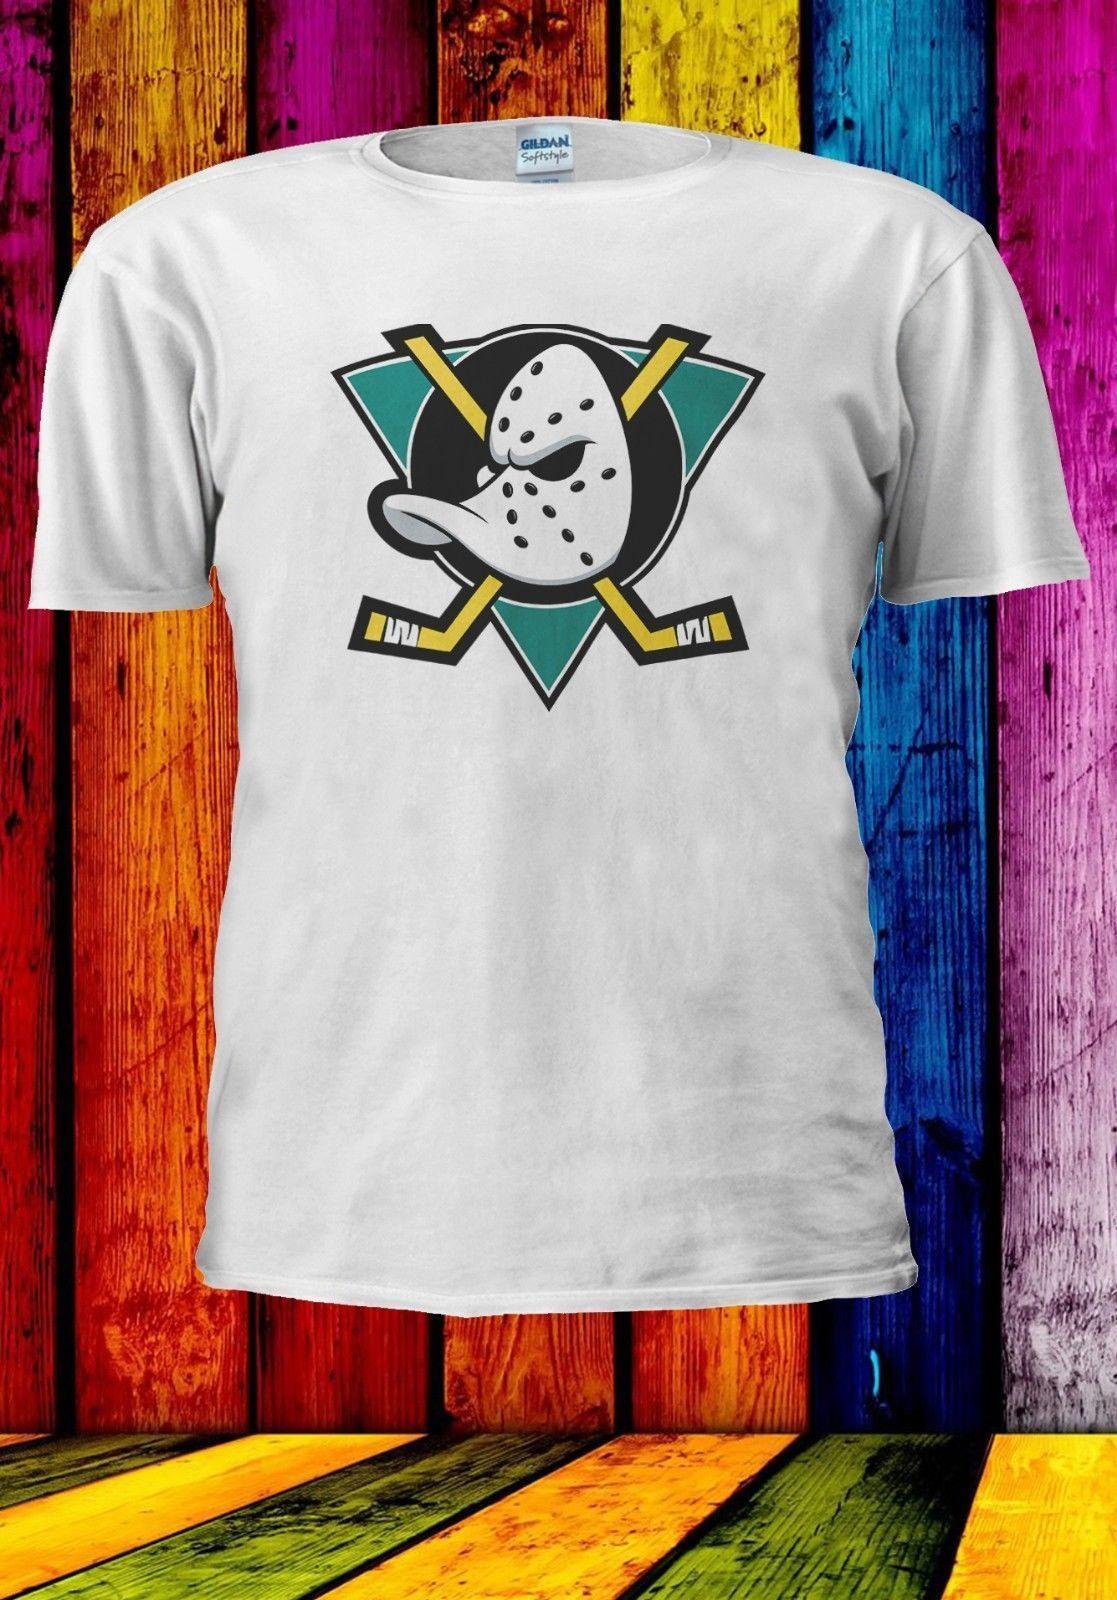 MIGHTY DUCKS NHL HOCKEY Hombres Mujeres Unisex Camiseta Chaleco Top Béisbol Hoodie 954